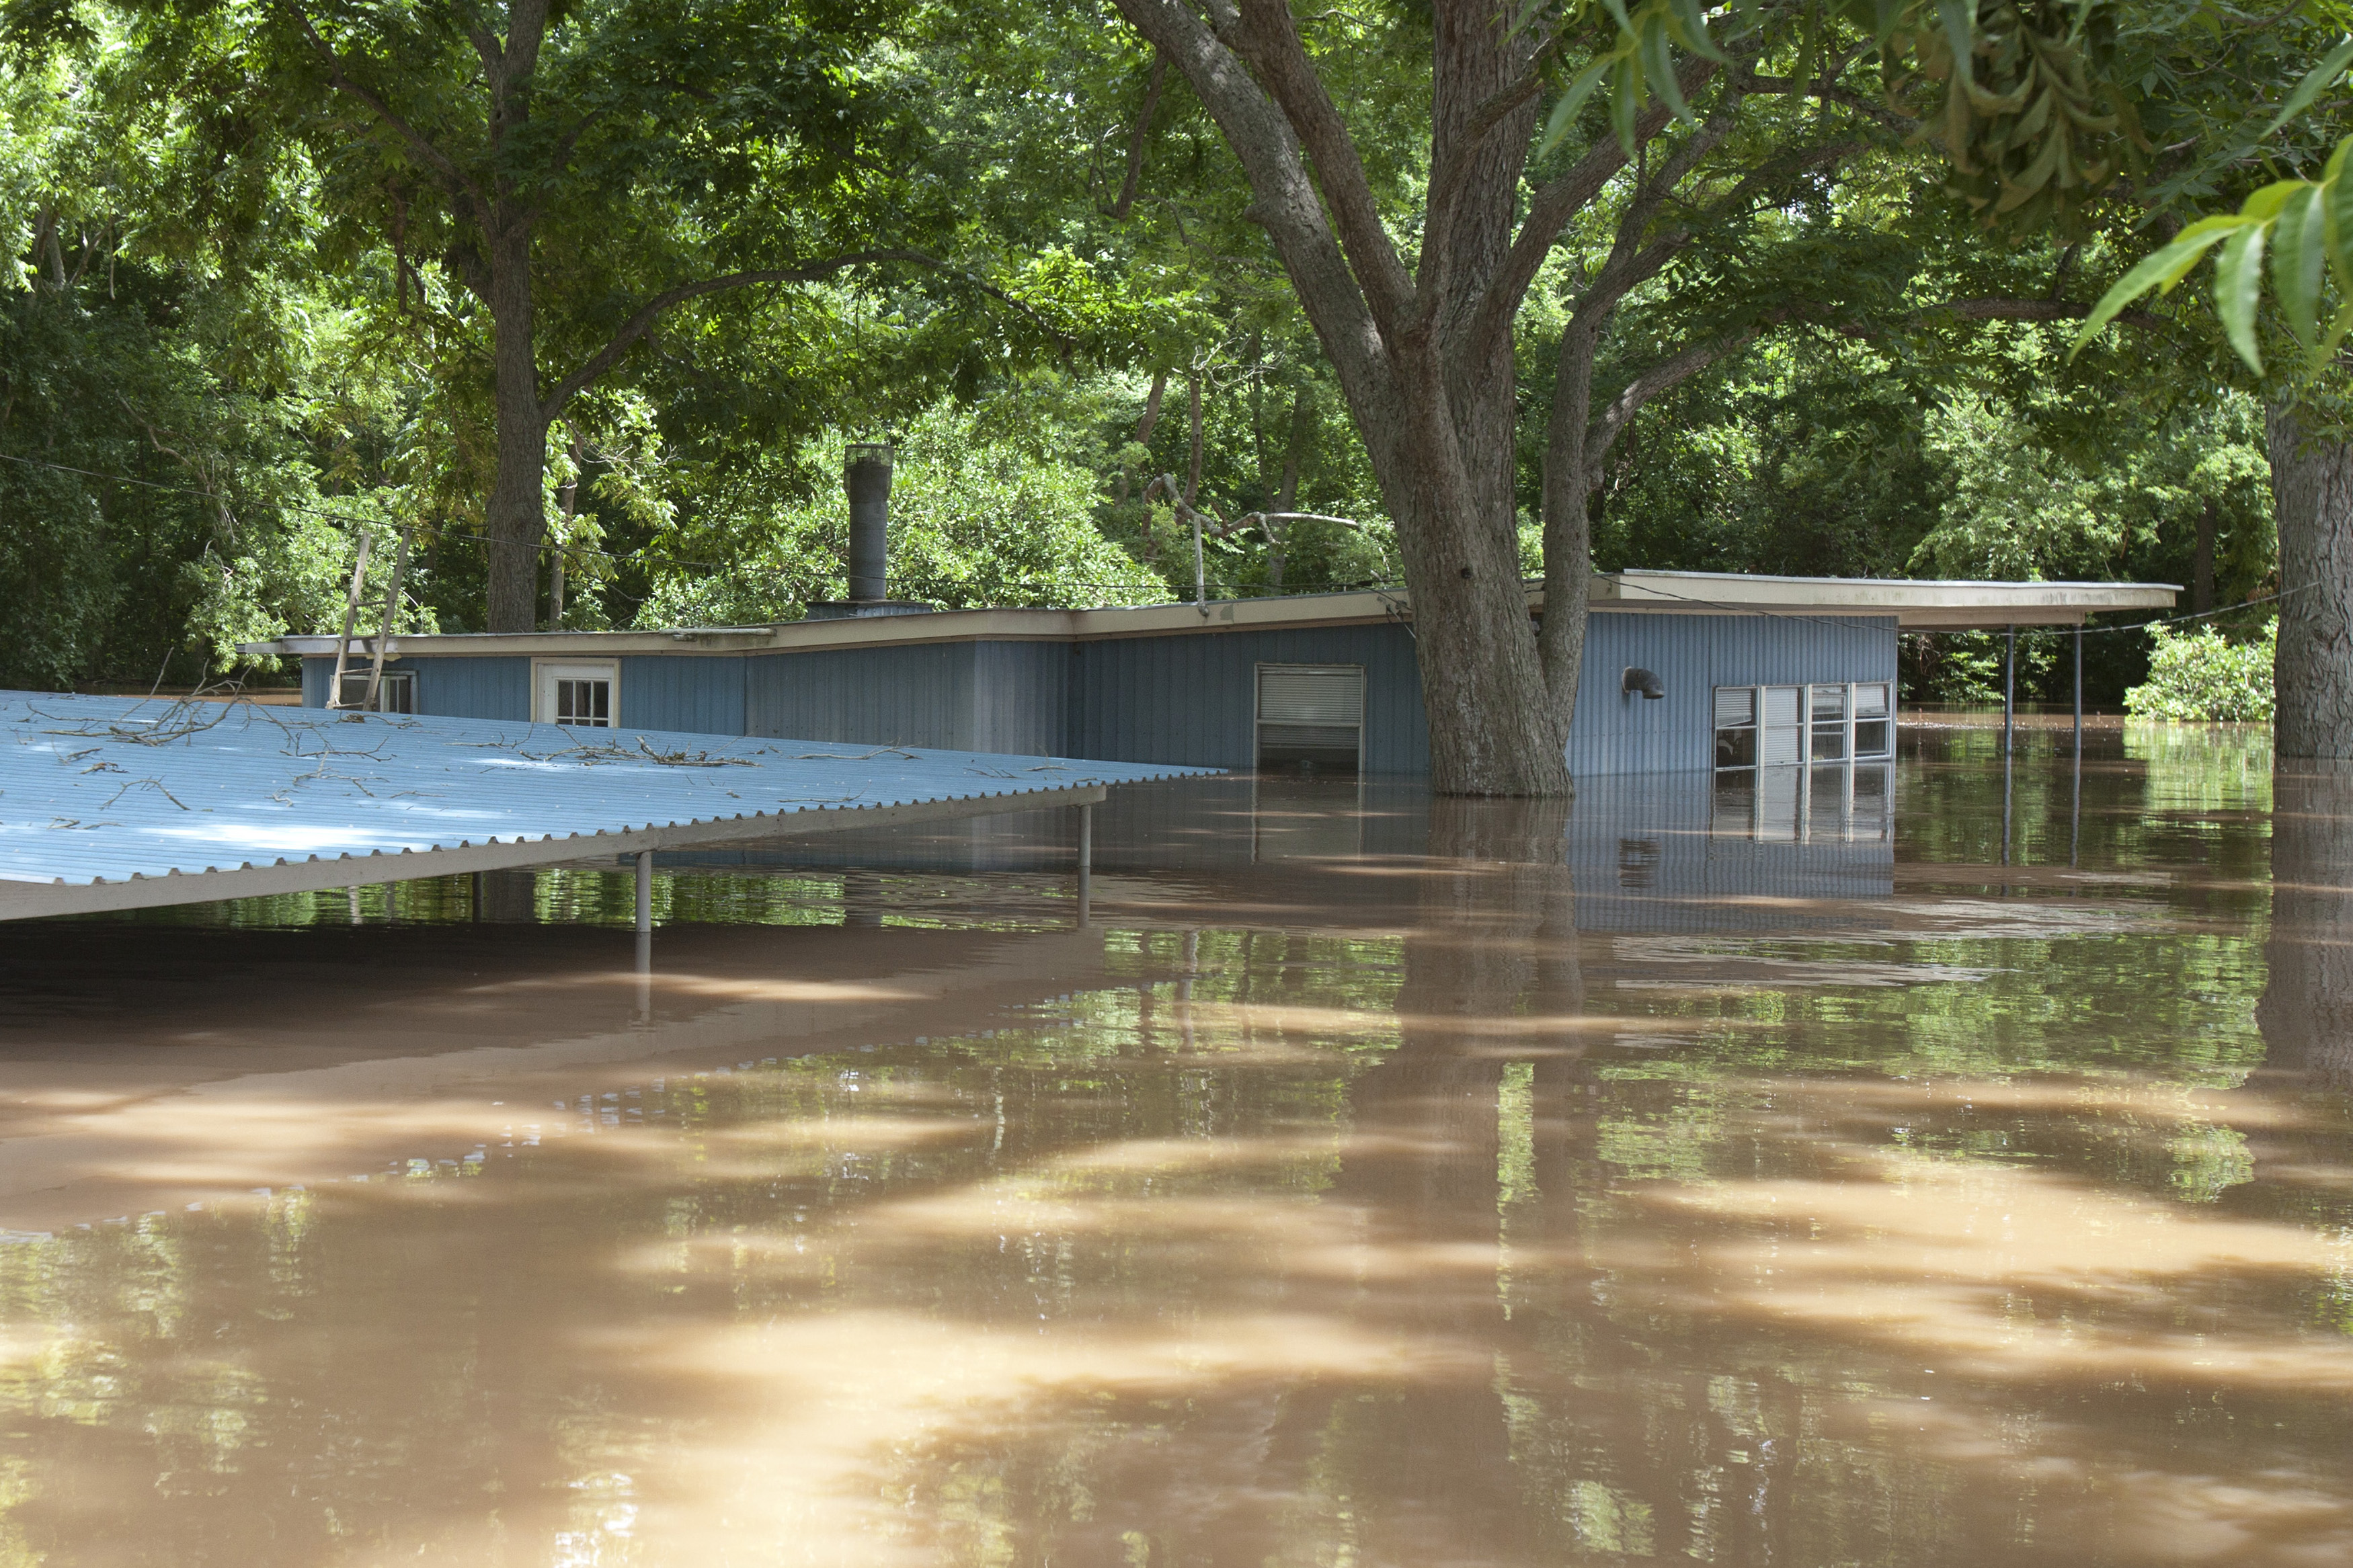 Texas Brazos River surges, Houston braces for flooding